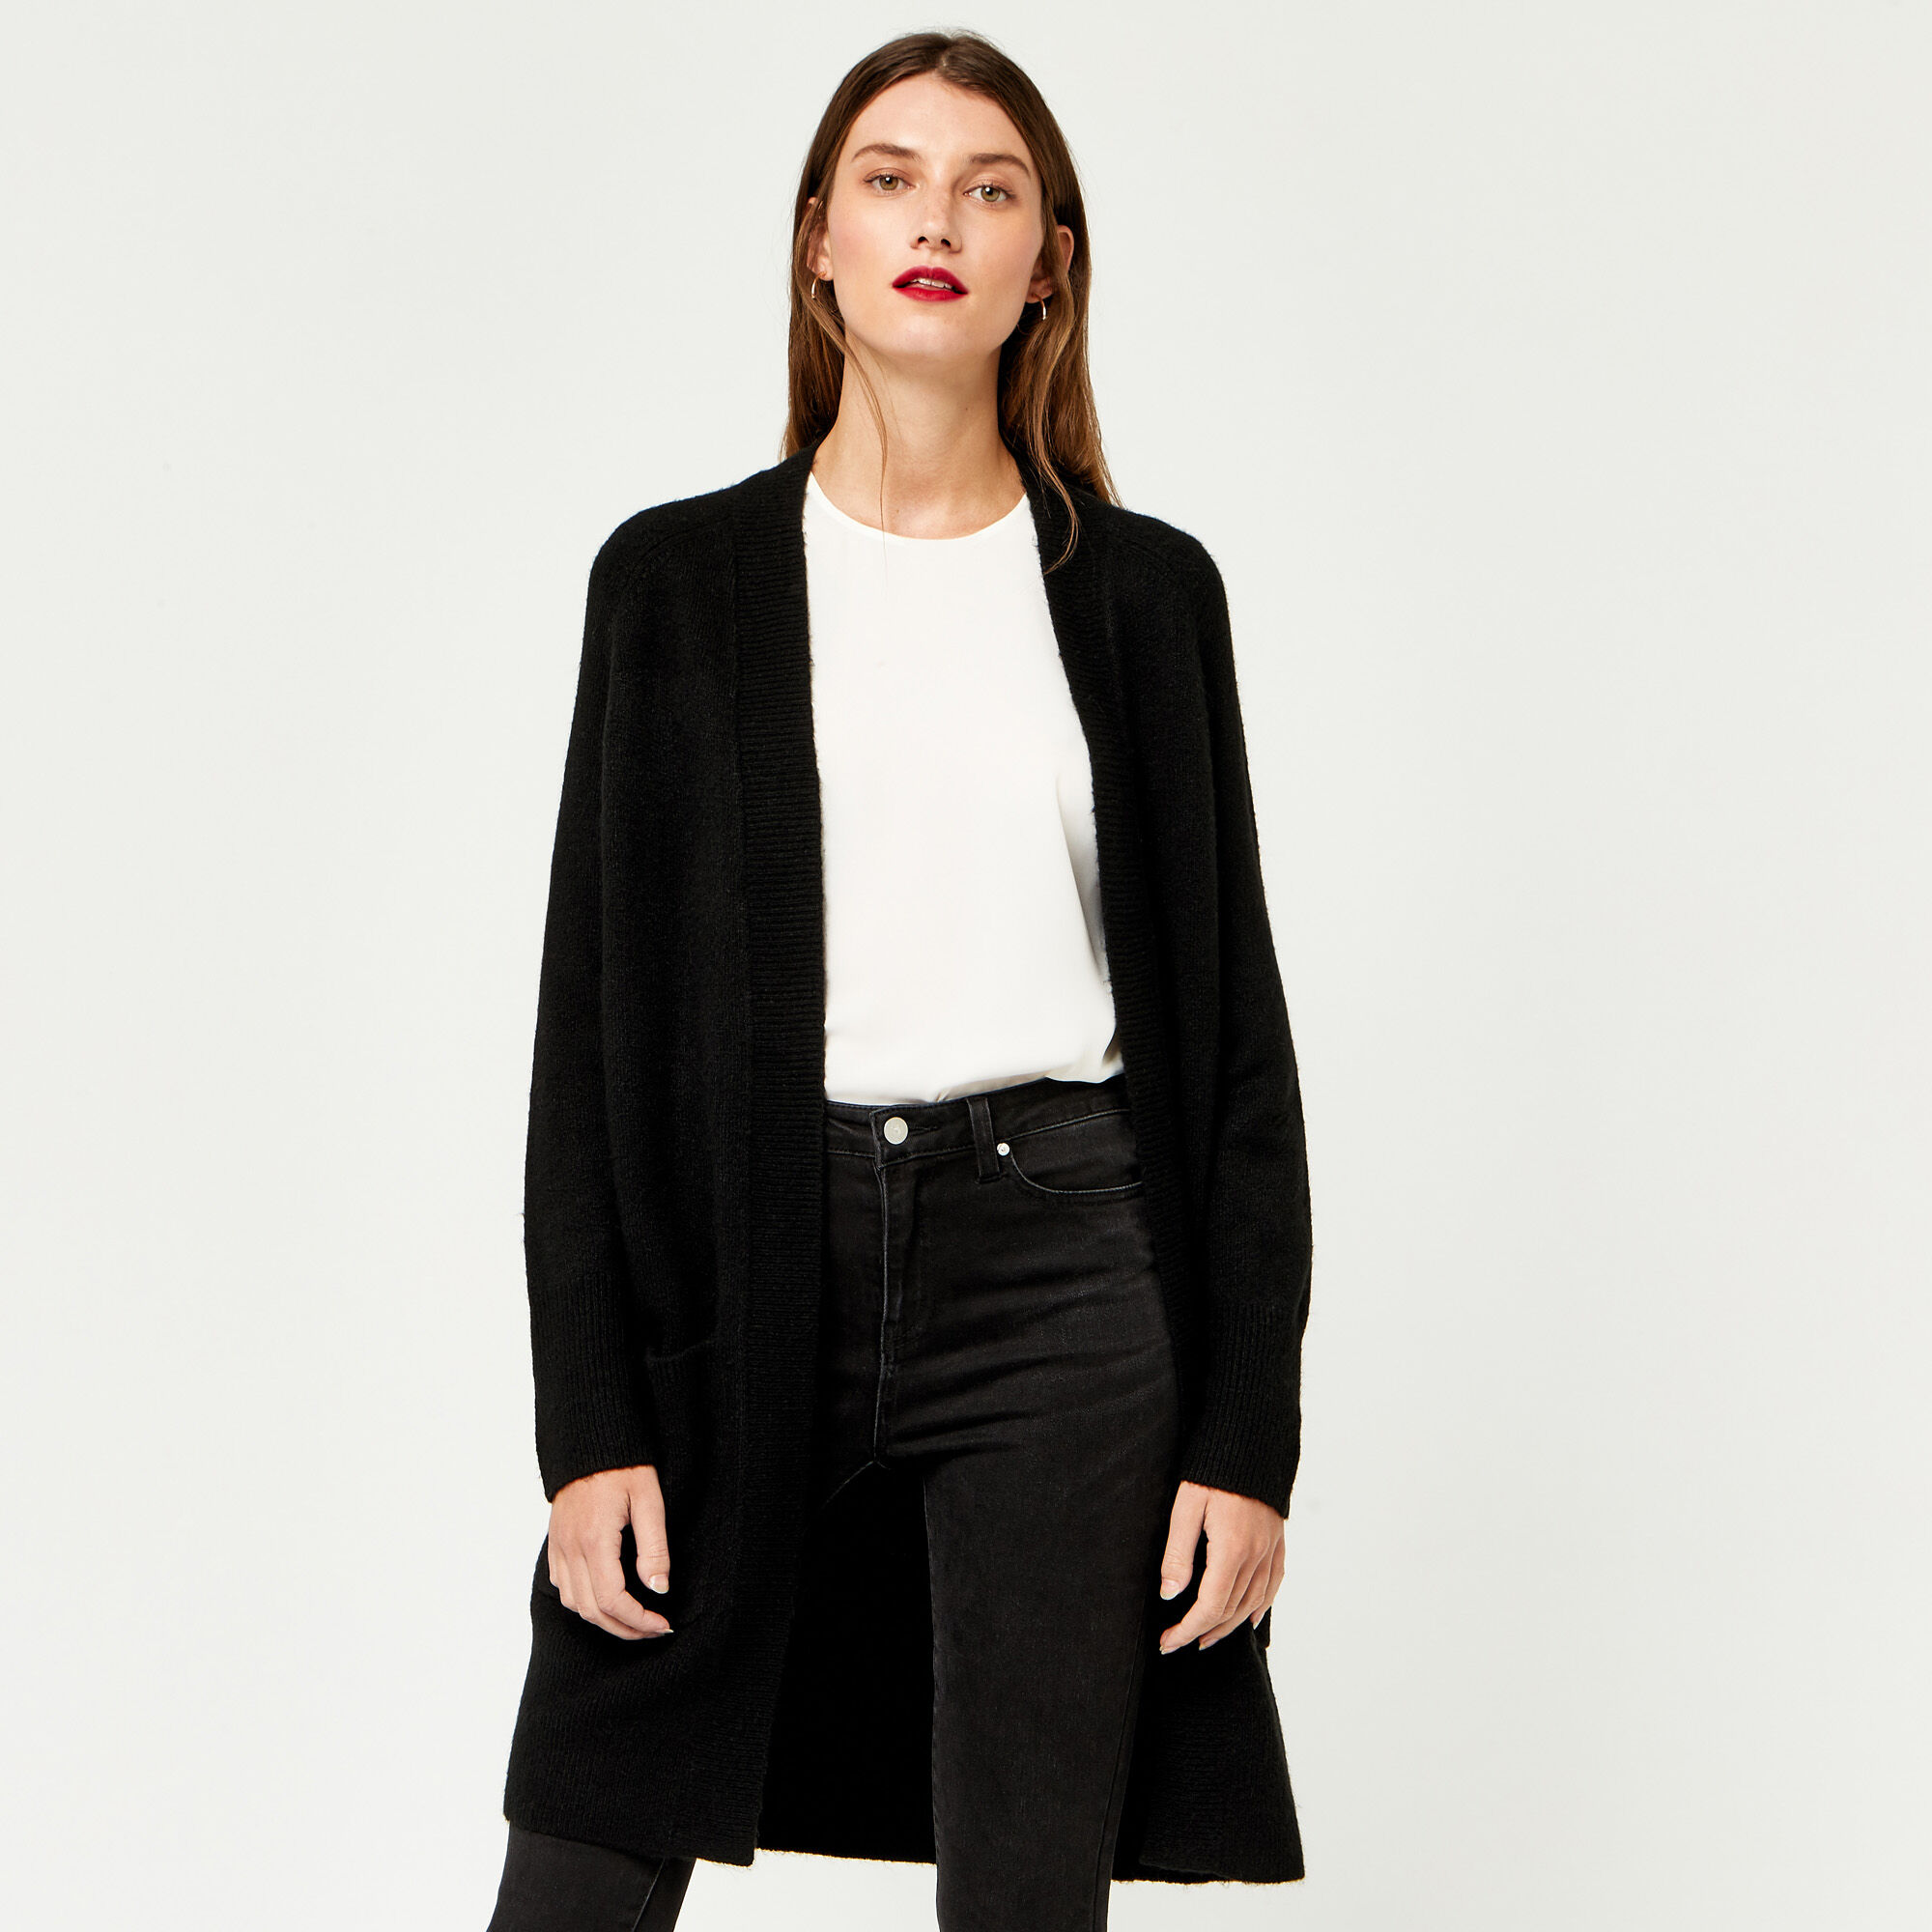 Warehouse, SOFT LONG LINE CARDI Black 1